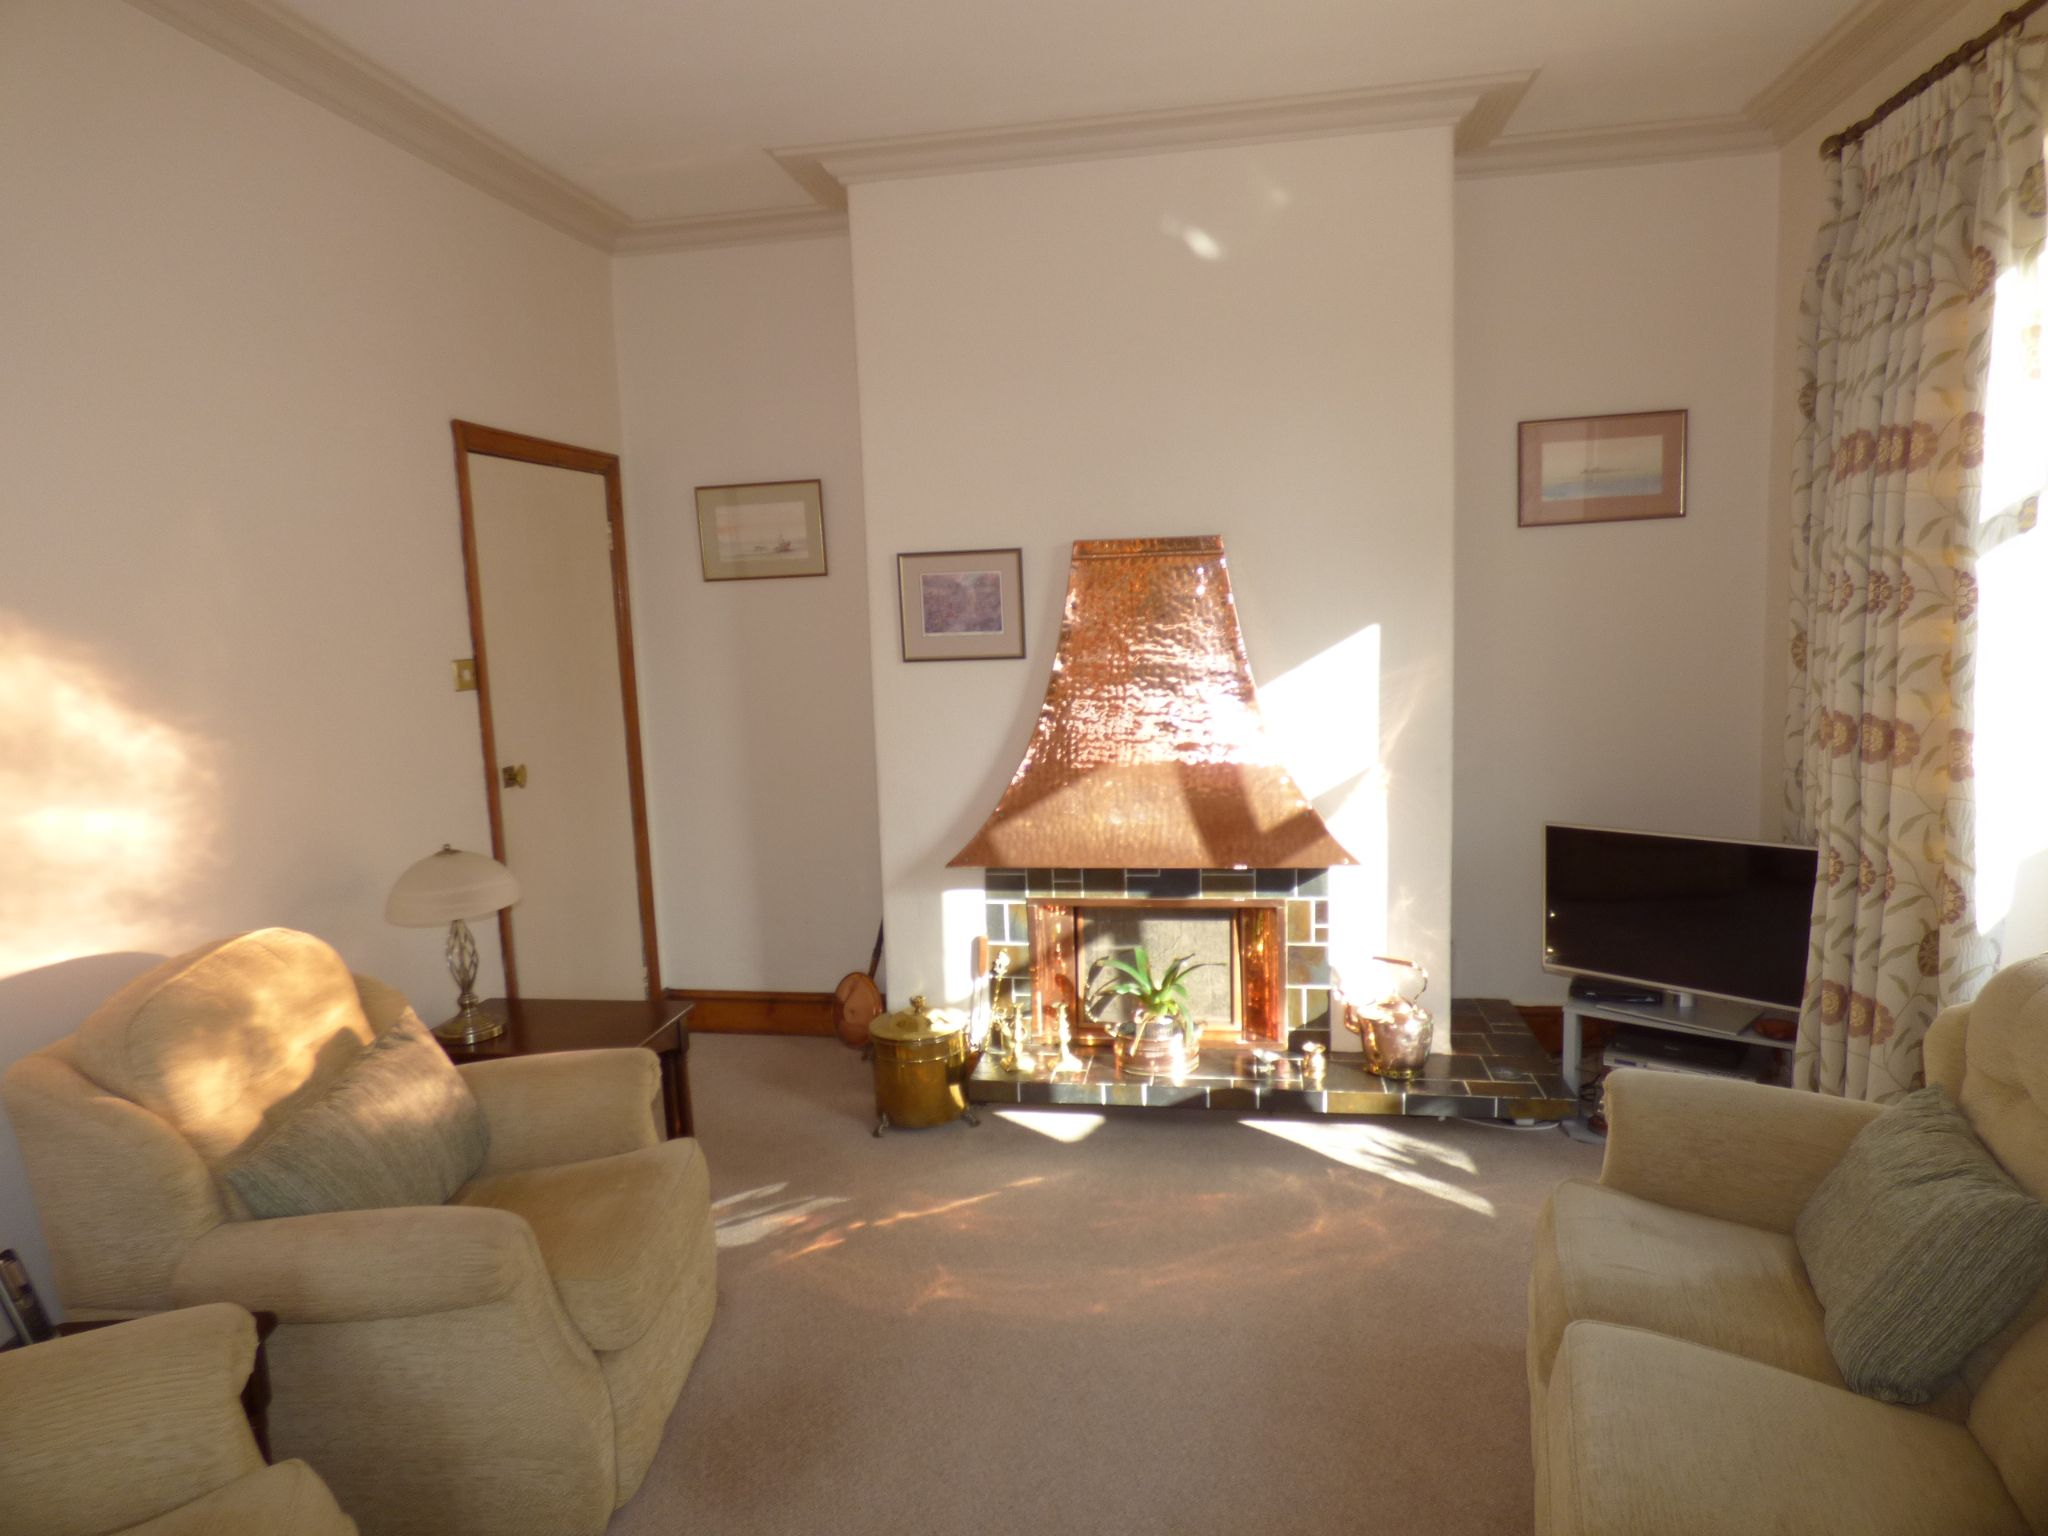 3 Bedroom Detached House For Sale - Lounge